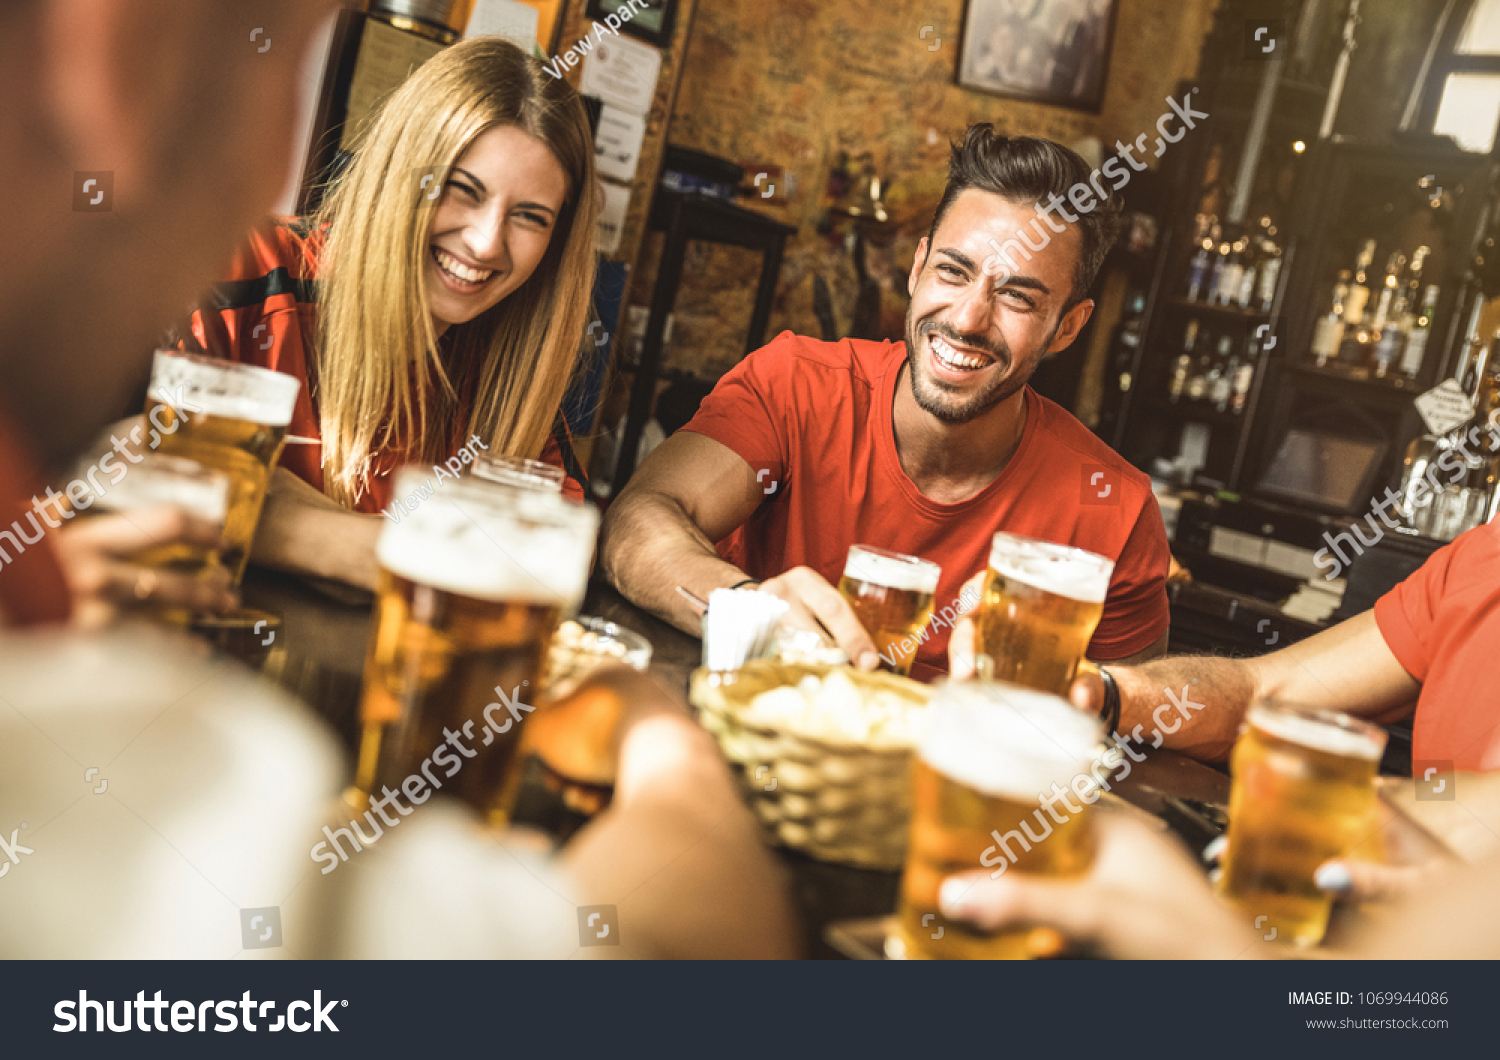 Happy friends group drinking beer at brewery bar restaurant - Friendship concept with young people enjoying time together and having genuine fun at cool vintage pub - Focus on guy - High iso image #1069944086